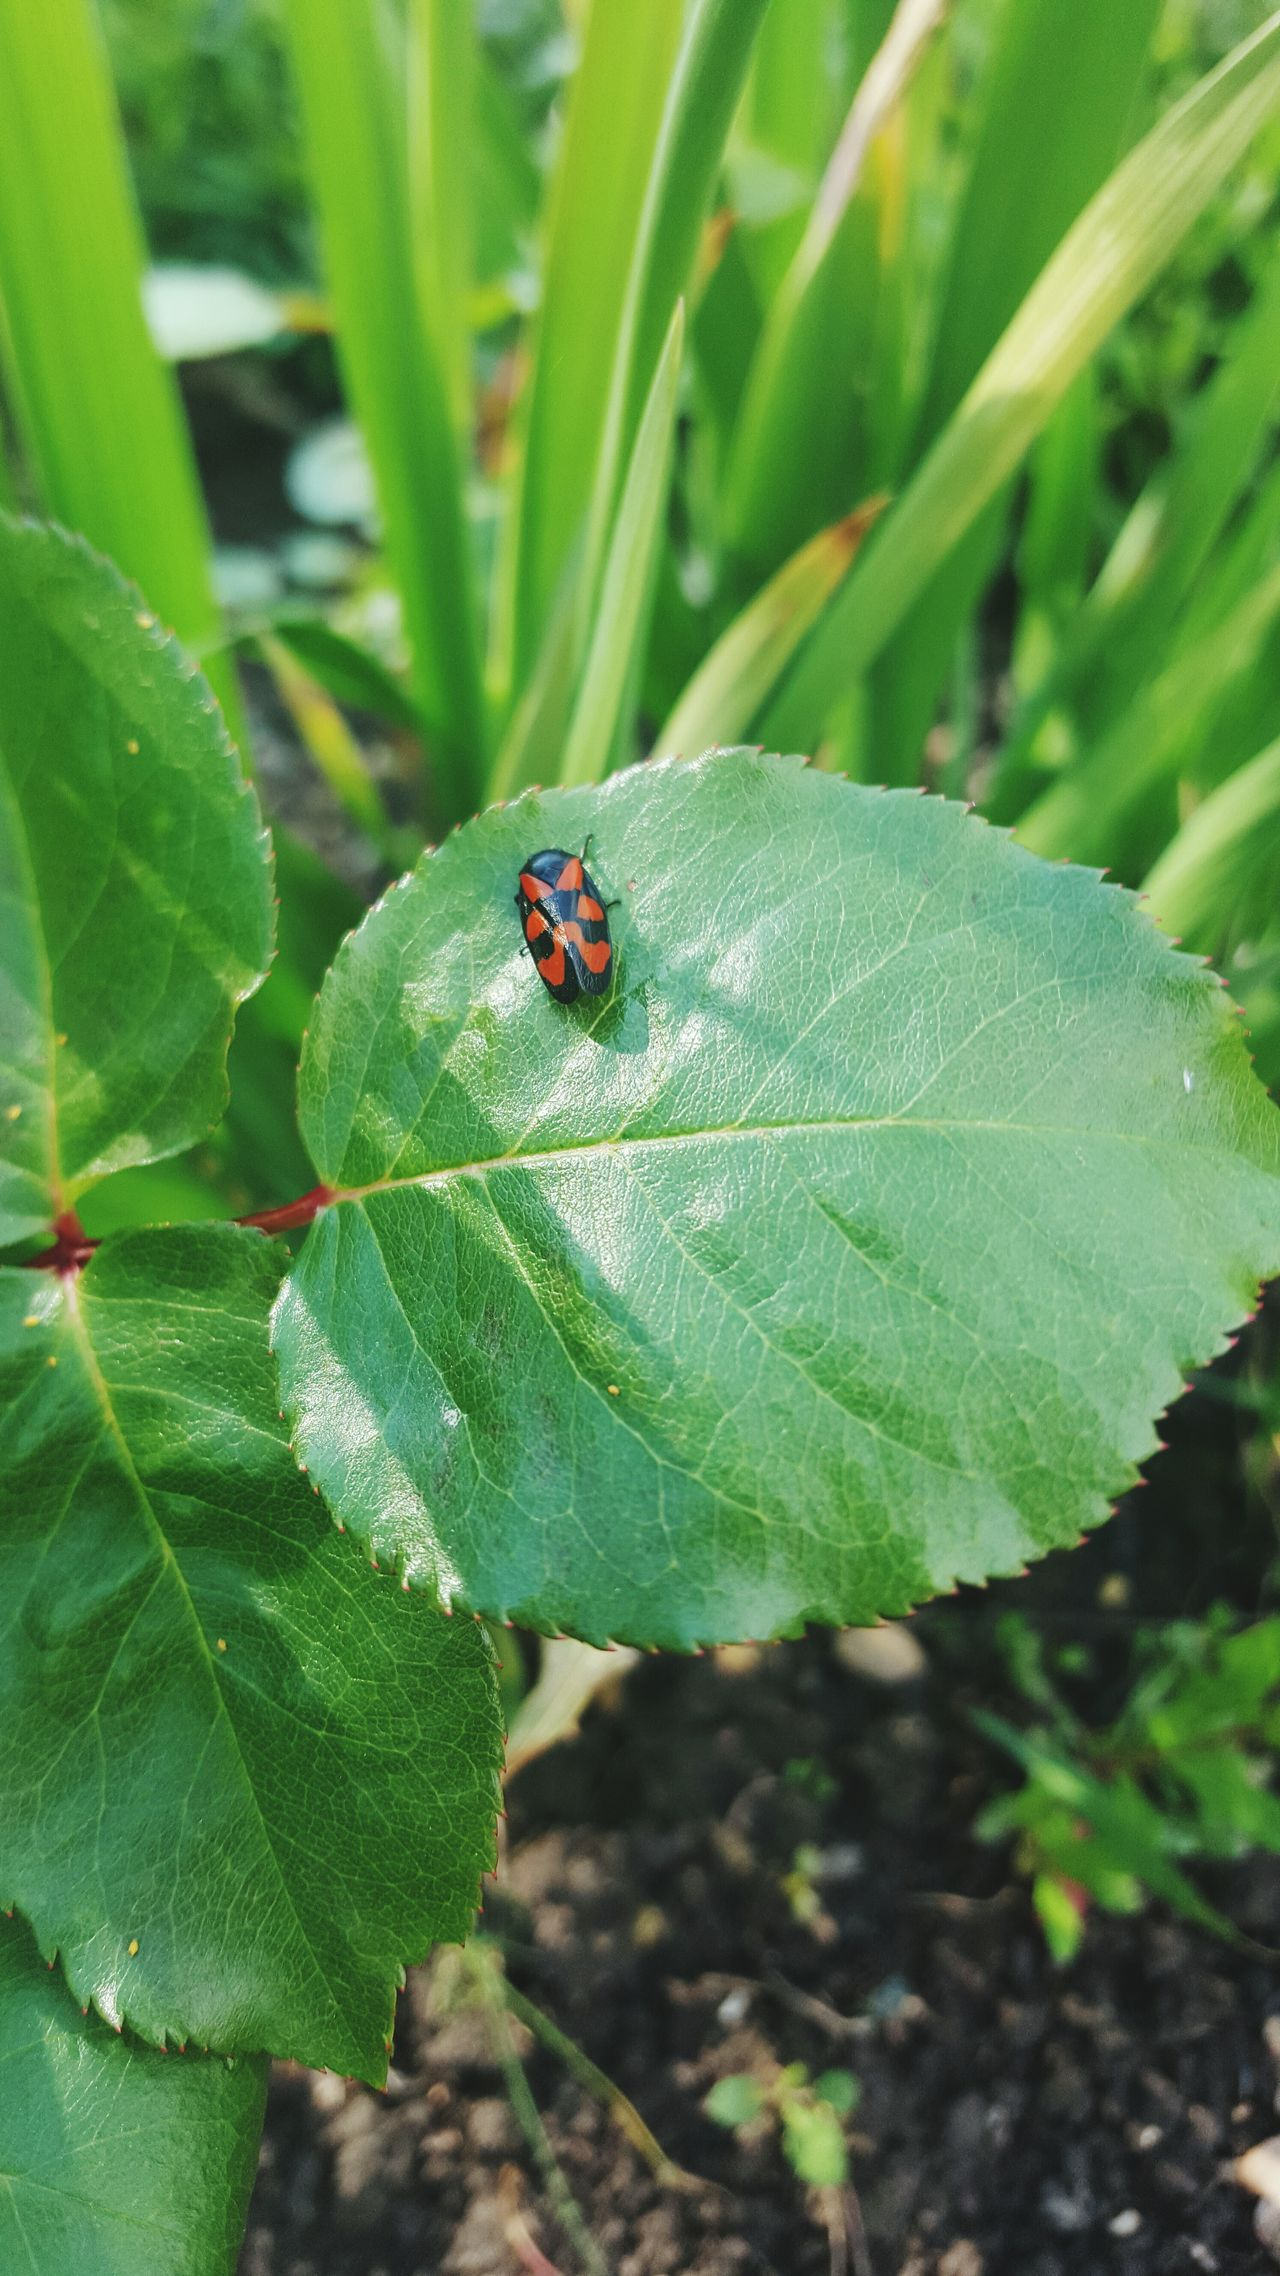 Insect Leaf Animals In The Wild Ladybug One Animal Green Color Animal Themes Close-up Outdoors Day Nature No People Red Plant